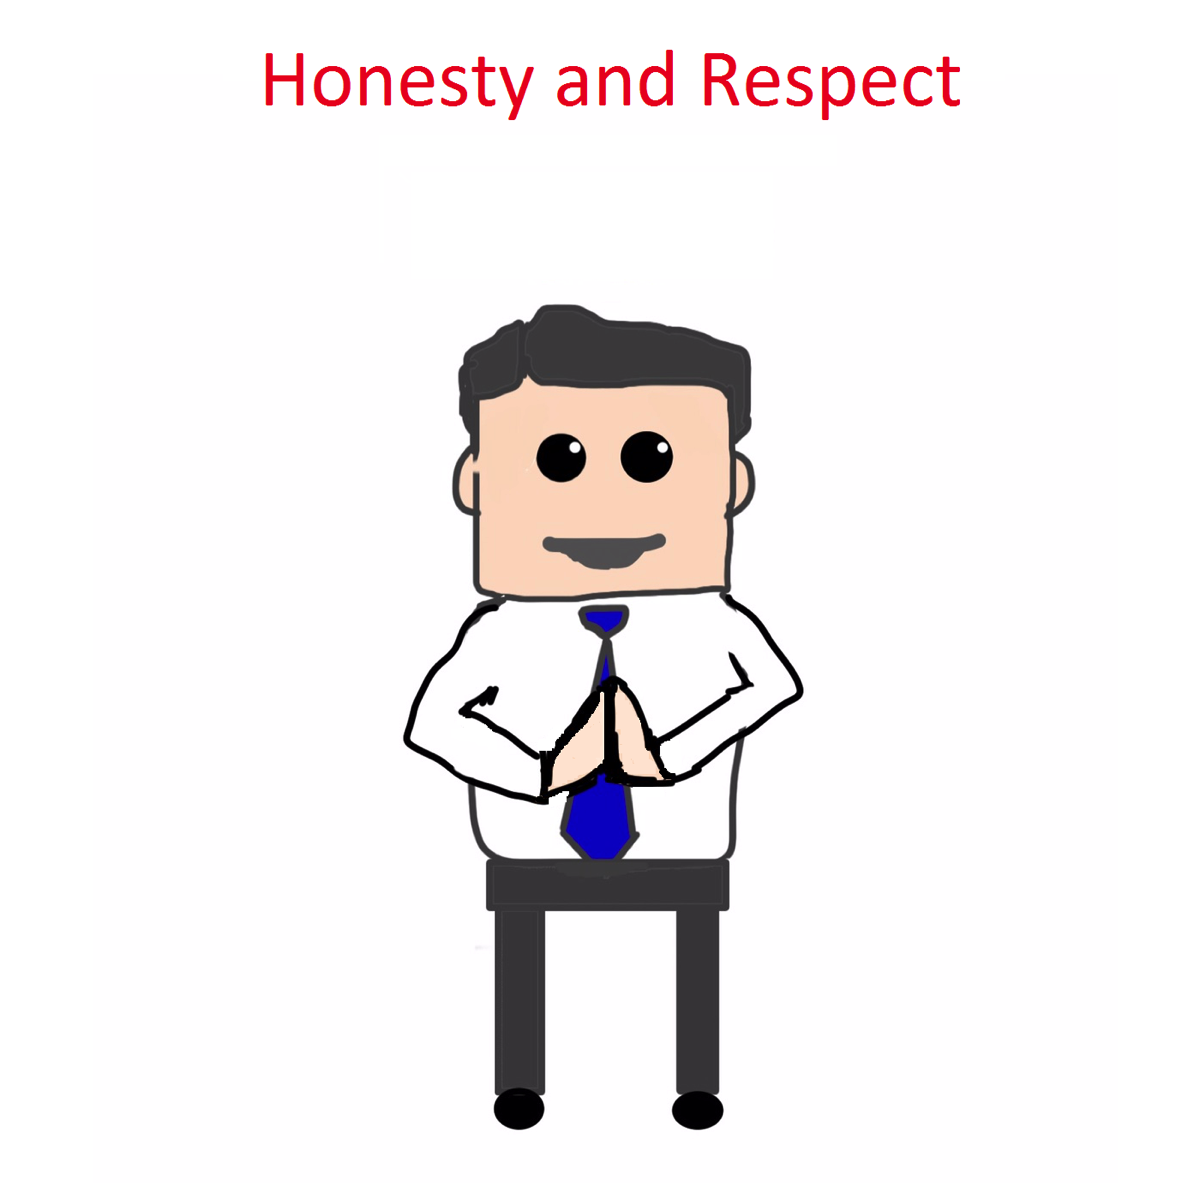 Honesty and Respect